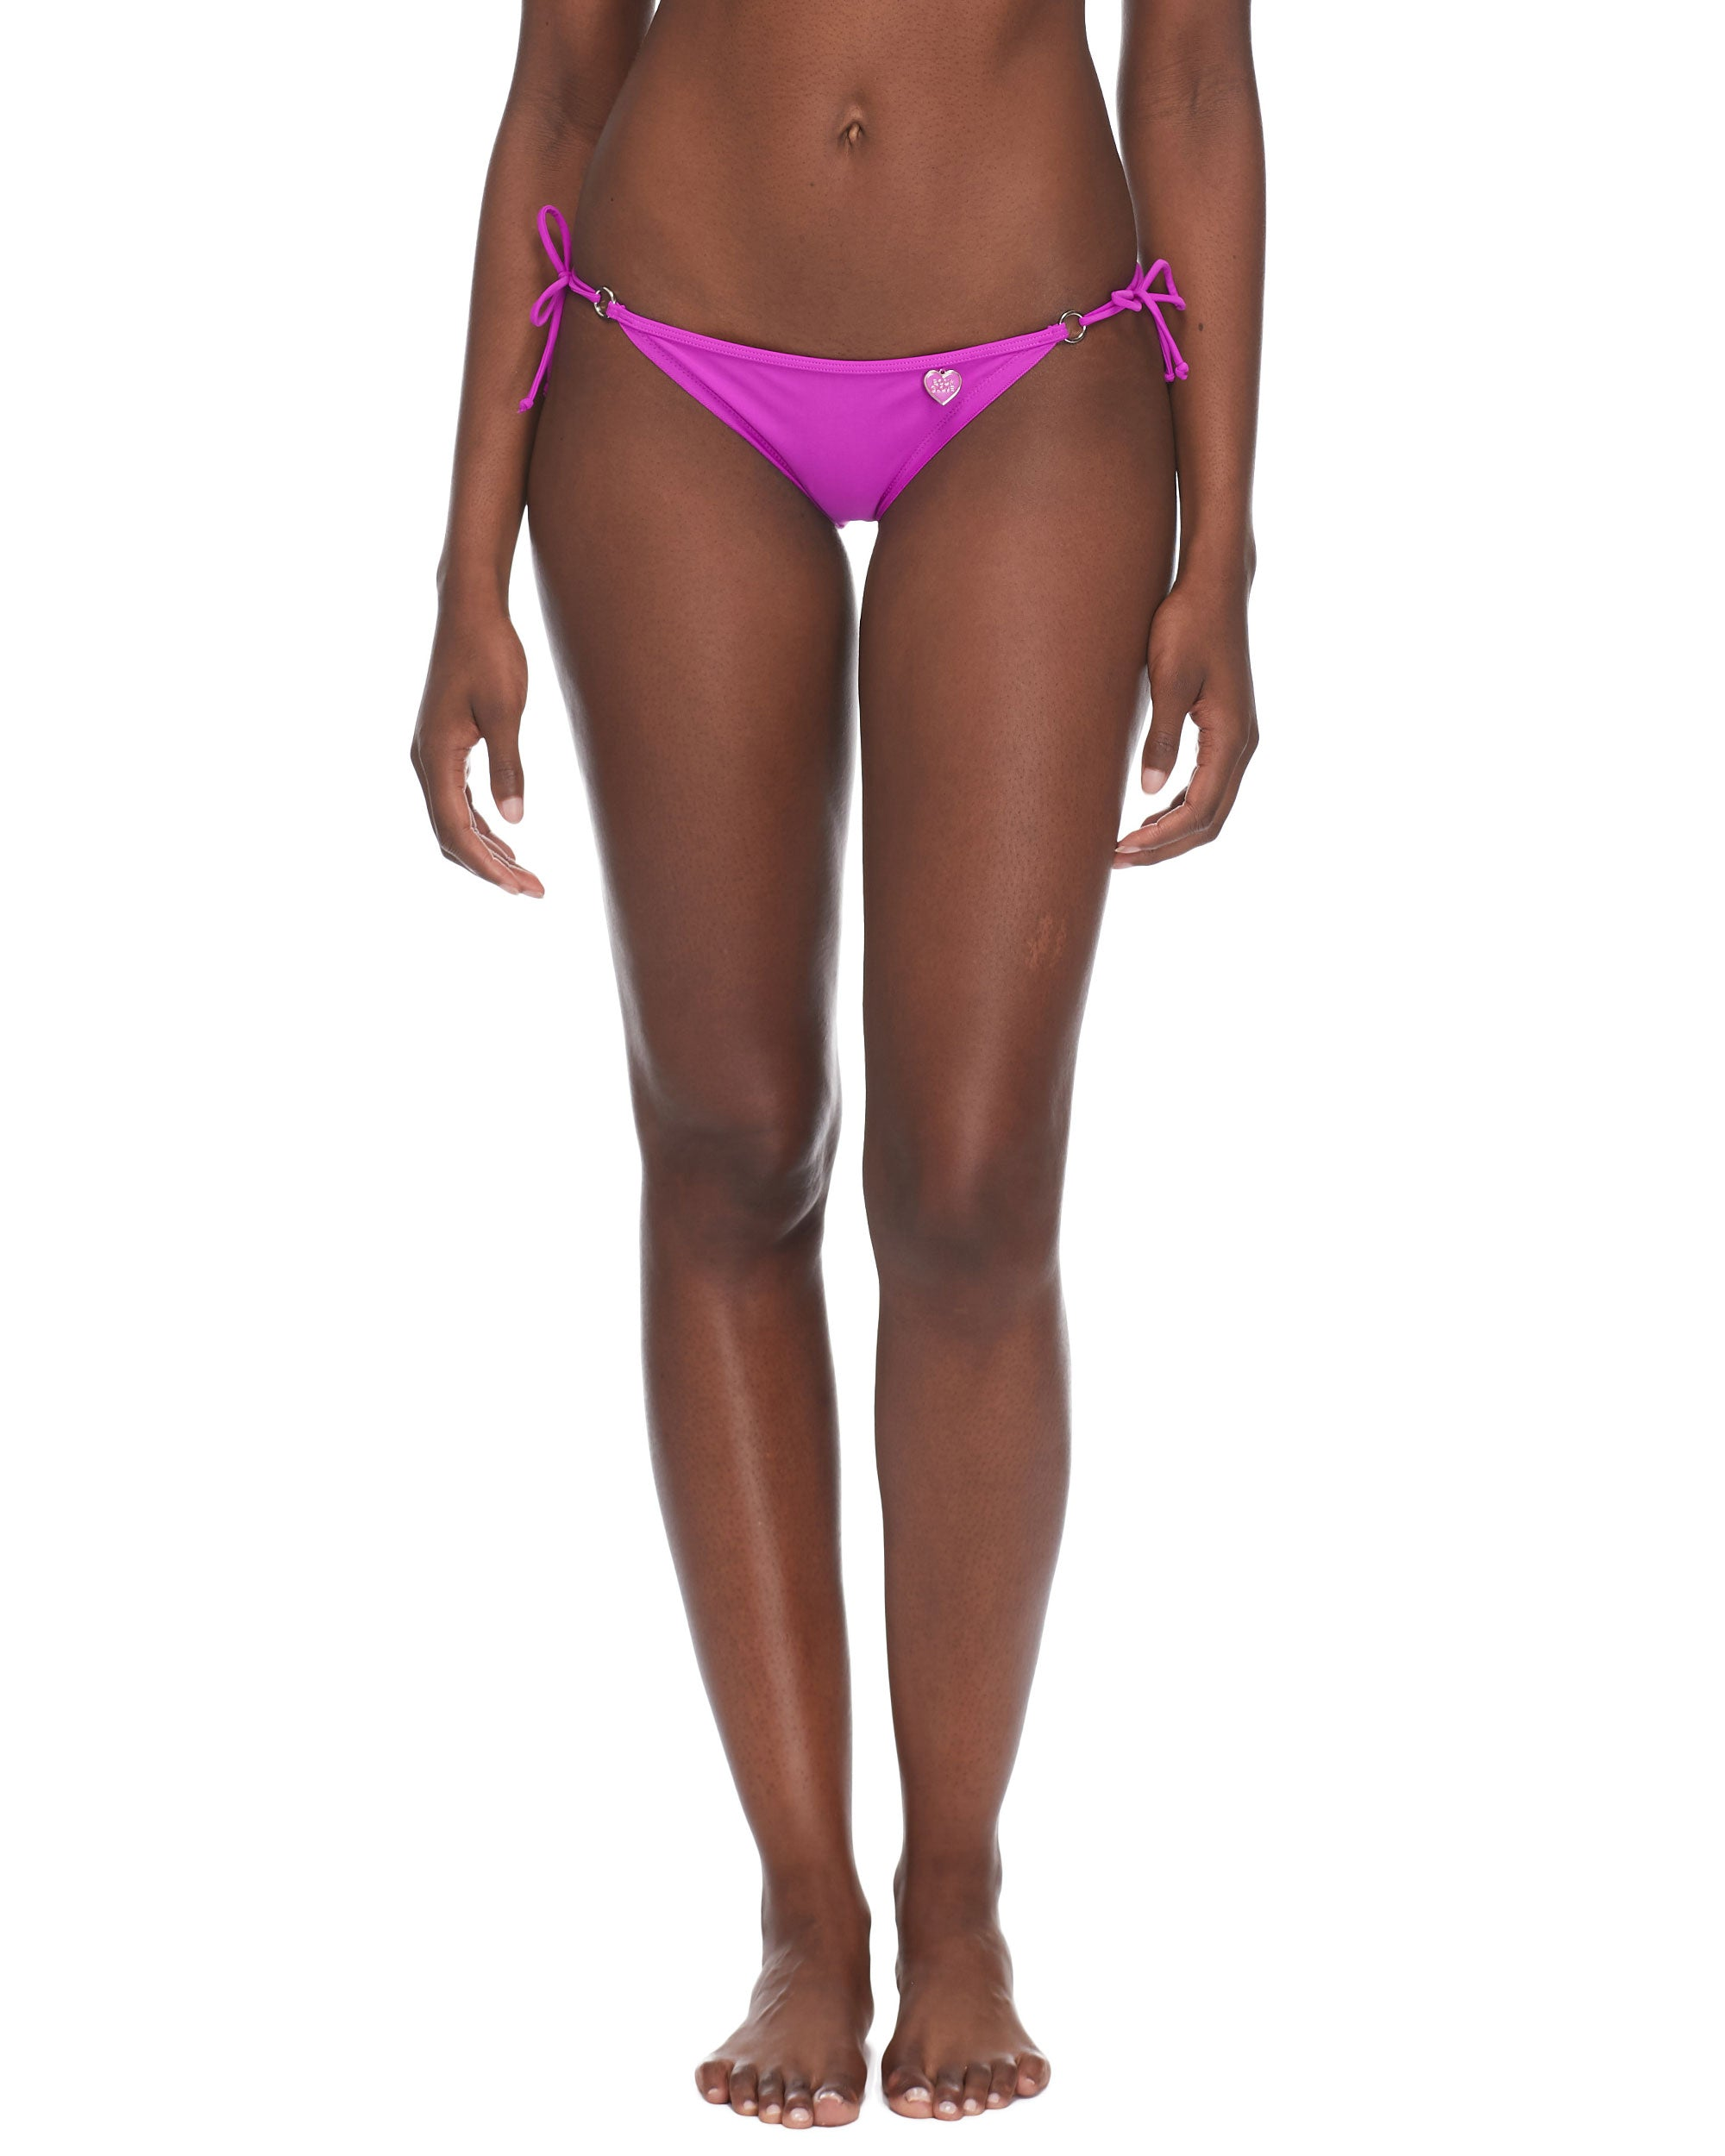 Smoothies Brasilia Side-Tie Bikini Bottom - Magnolia